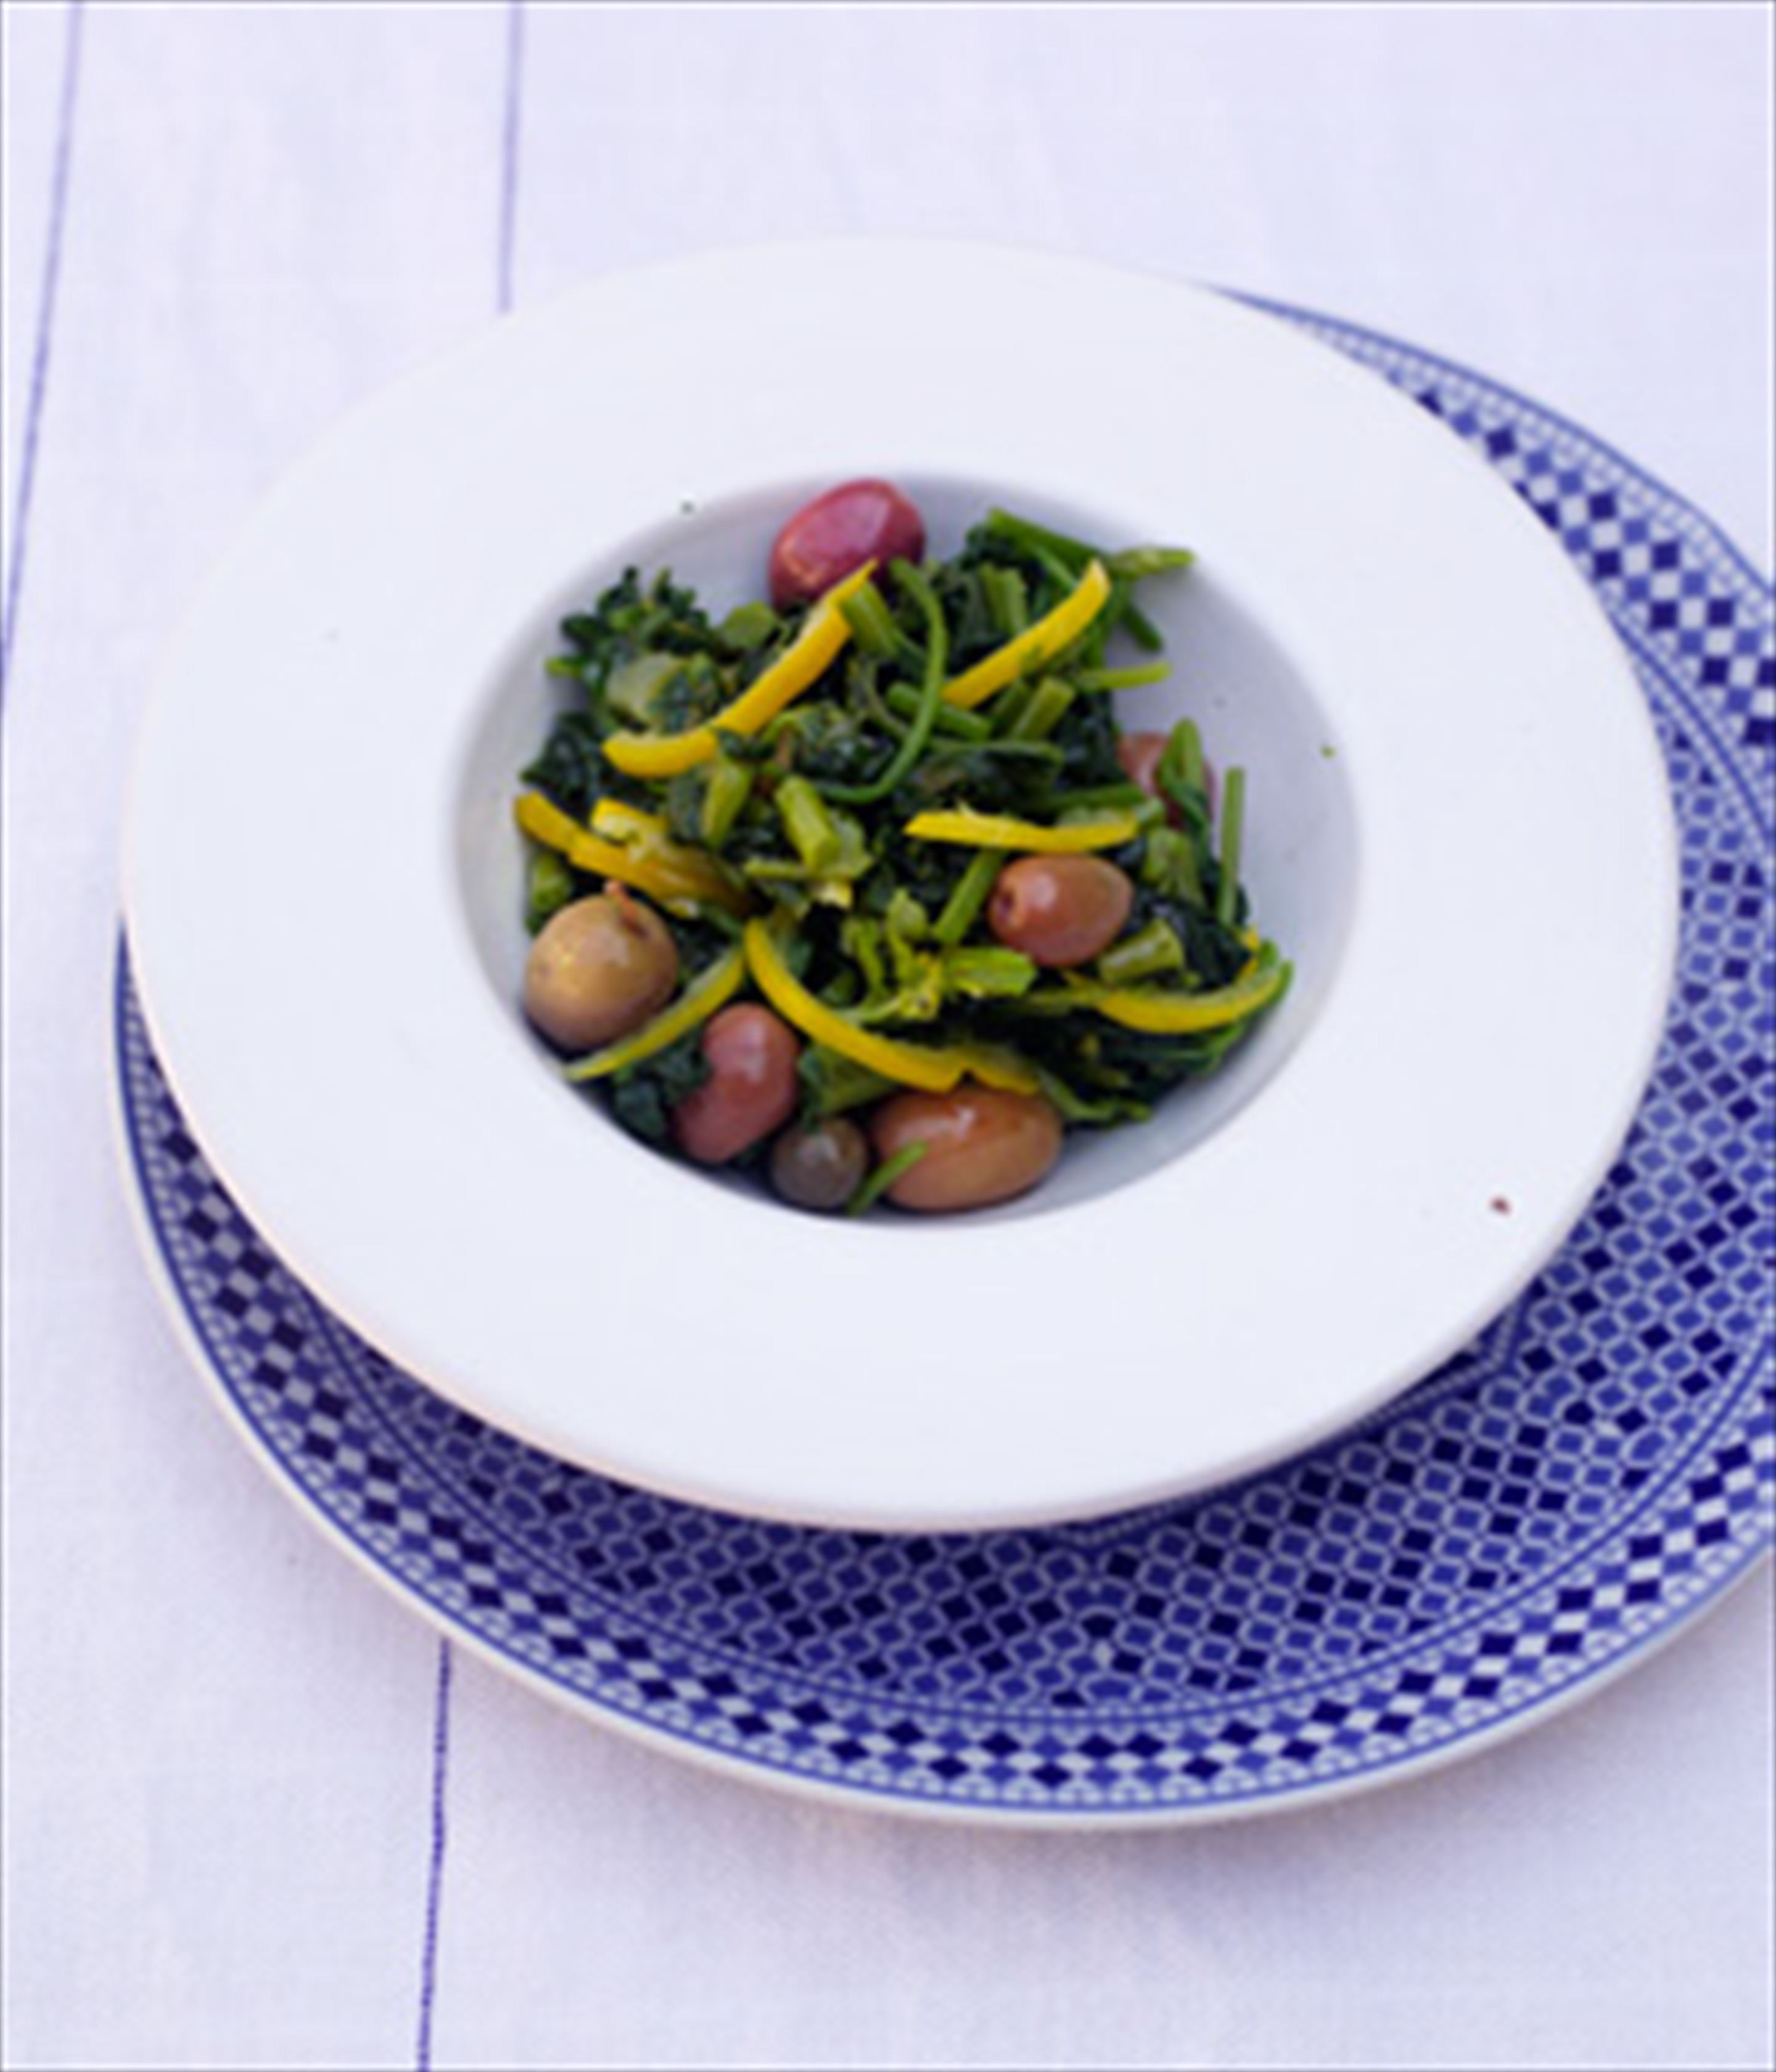 Mallow, preserved lemon & olive salad